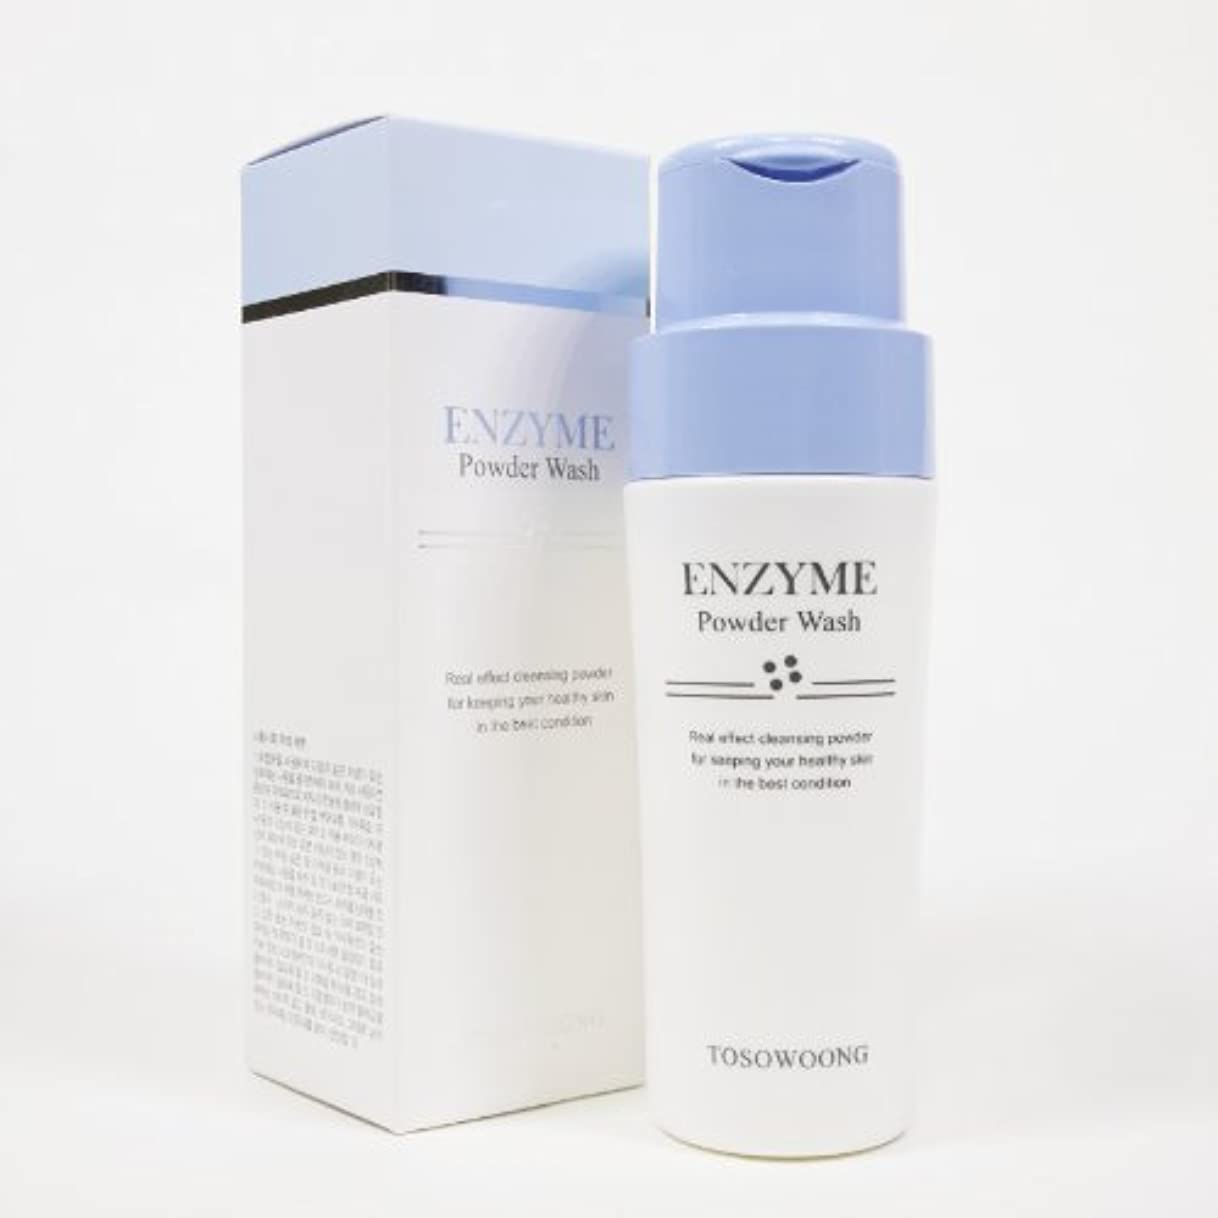 同級生技術者コイルTosowoong Enzyme Powder Wash 70g Pore Deep Cleansing Trouble Care [並行輸入品]